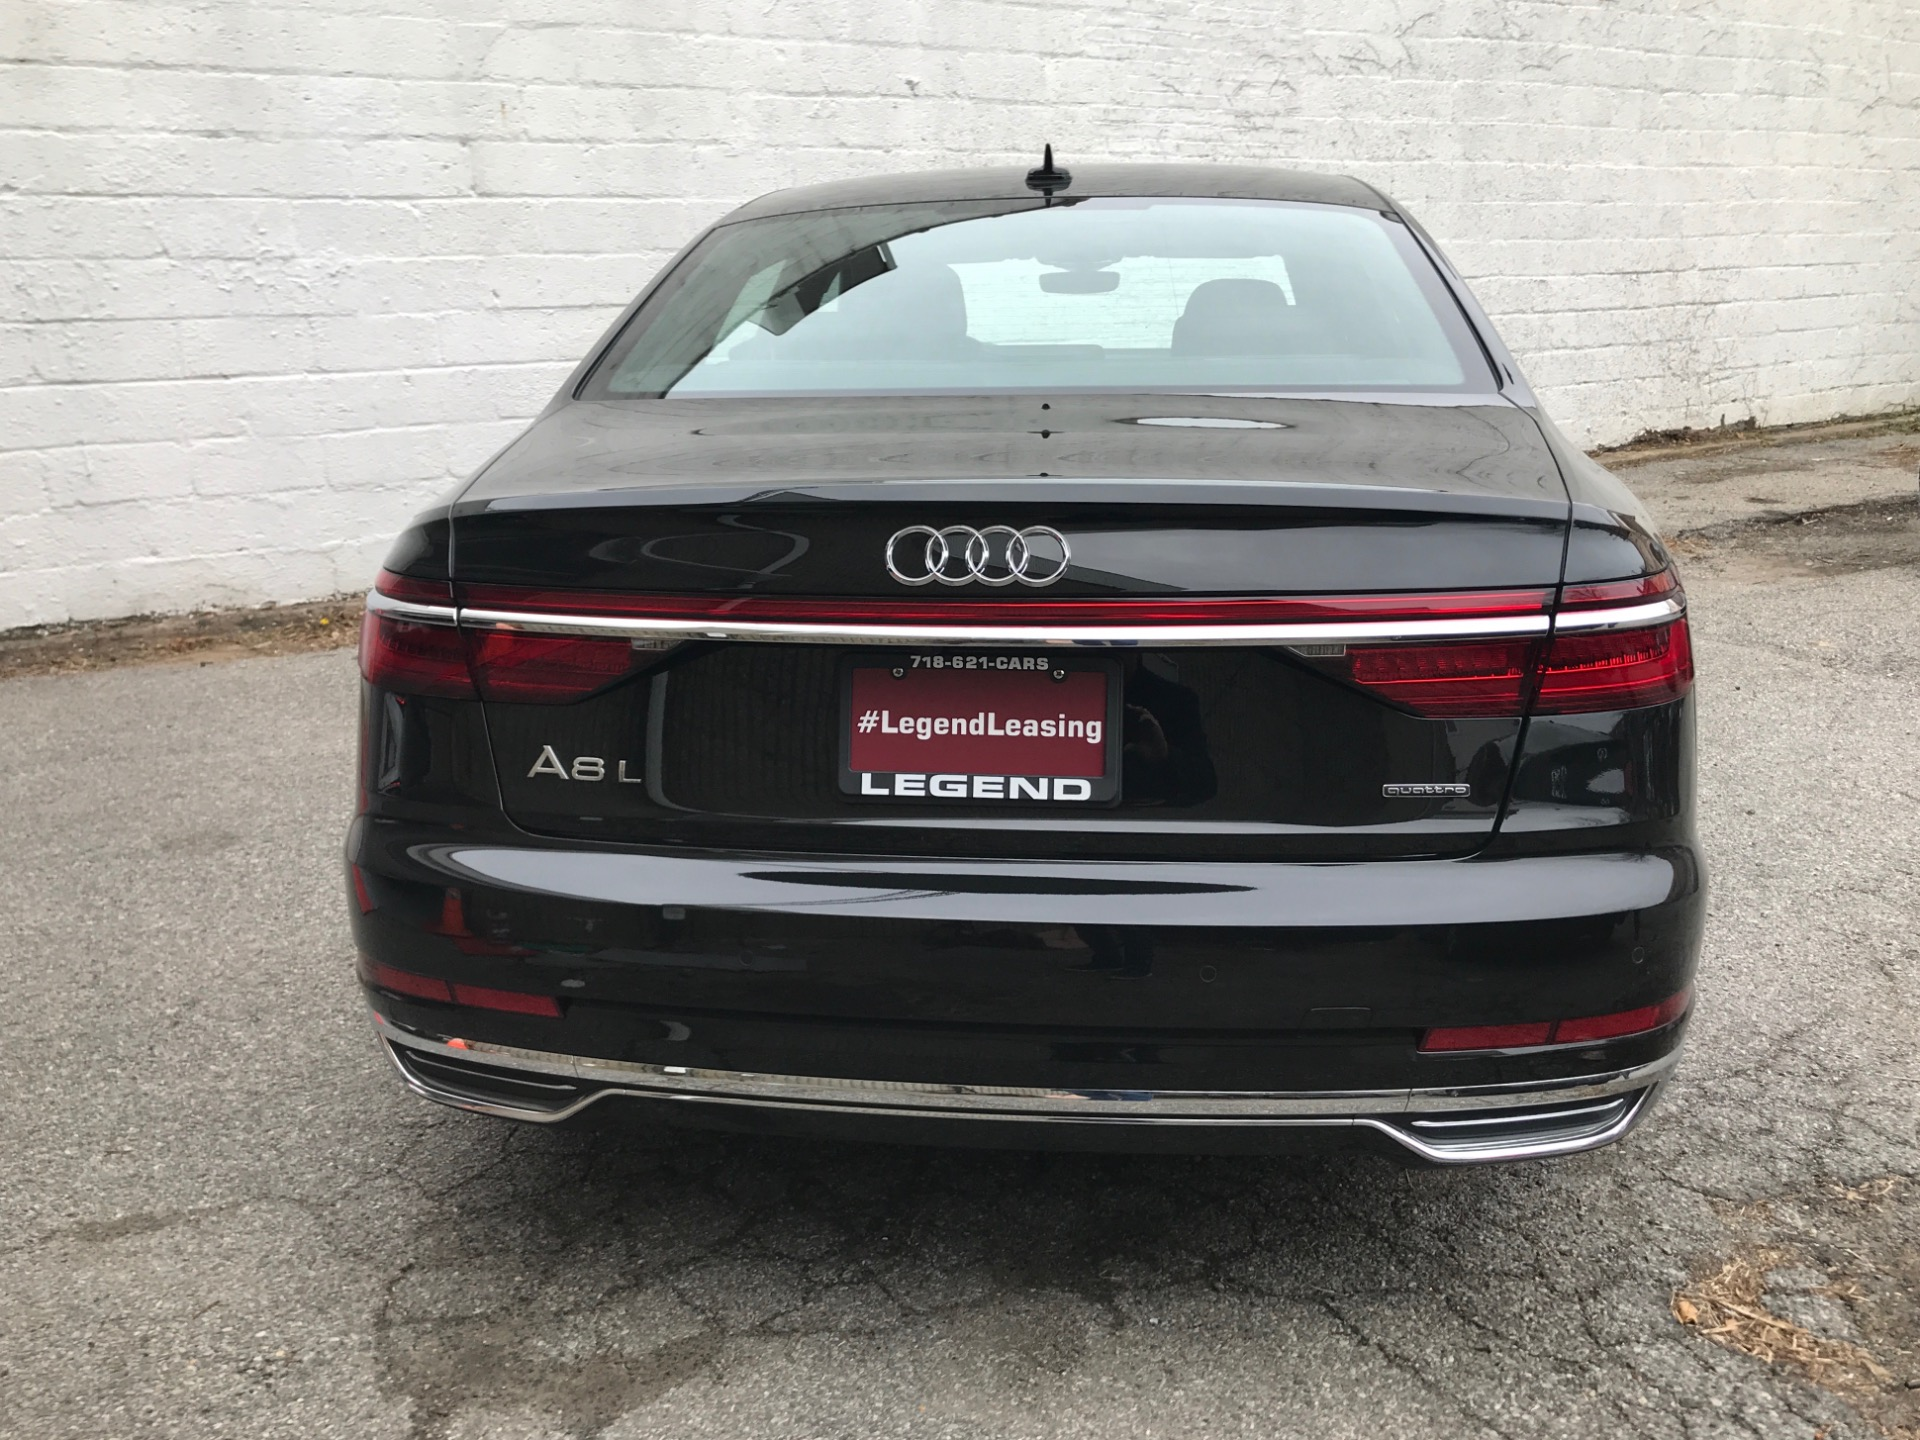 new 2020 audi a8 l 3.0 quattro for sale (special pricing